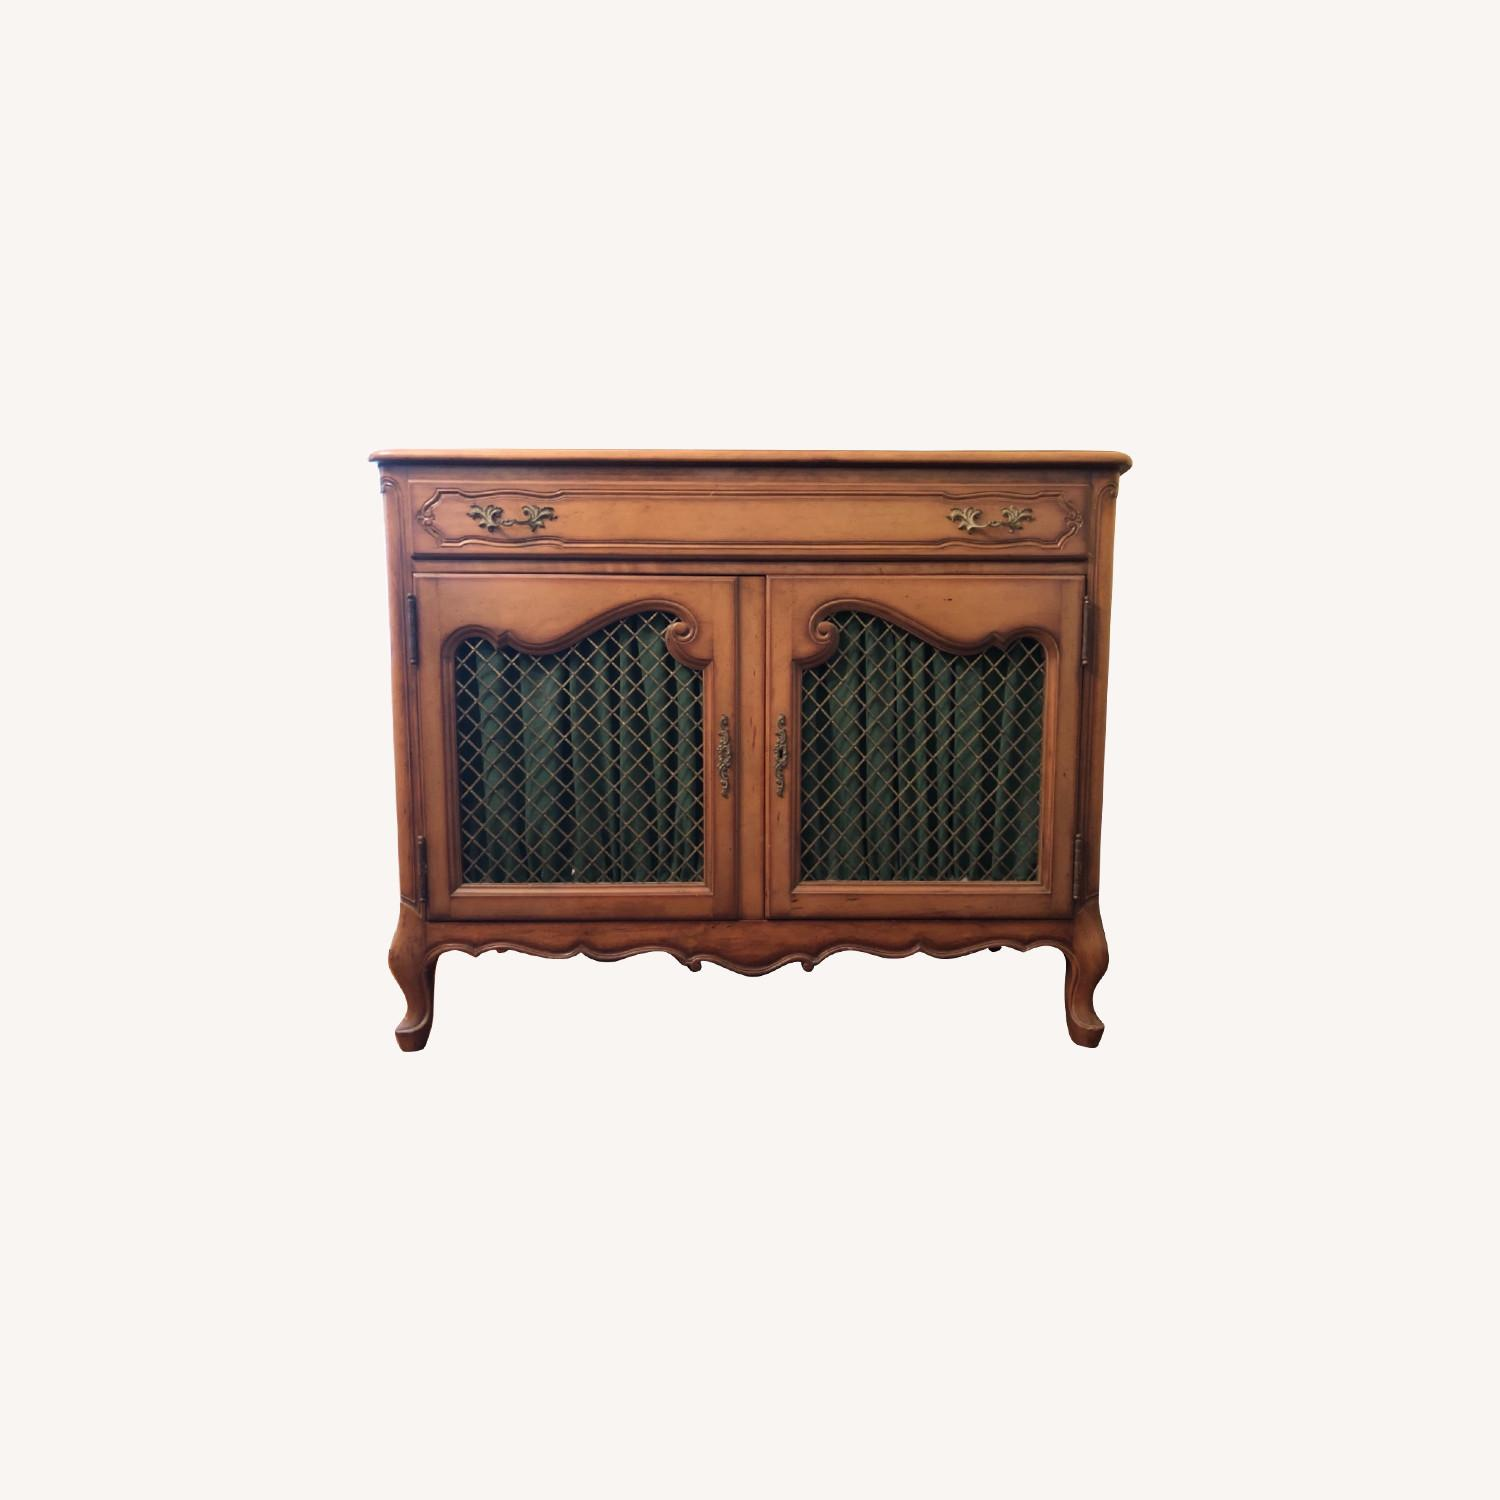 Antique Cherry Wood Sideboard - image-0